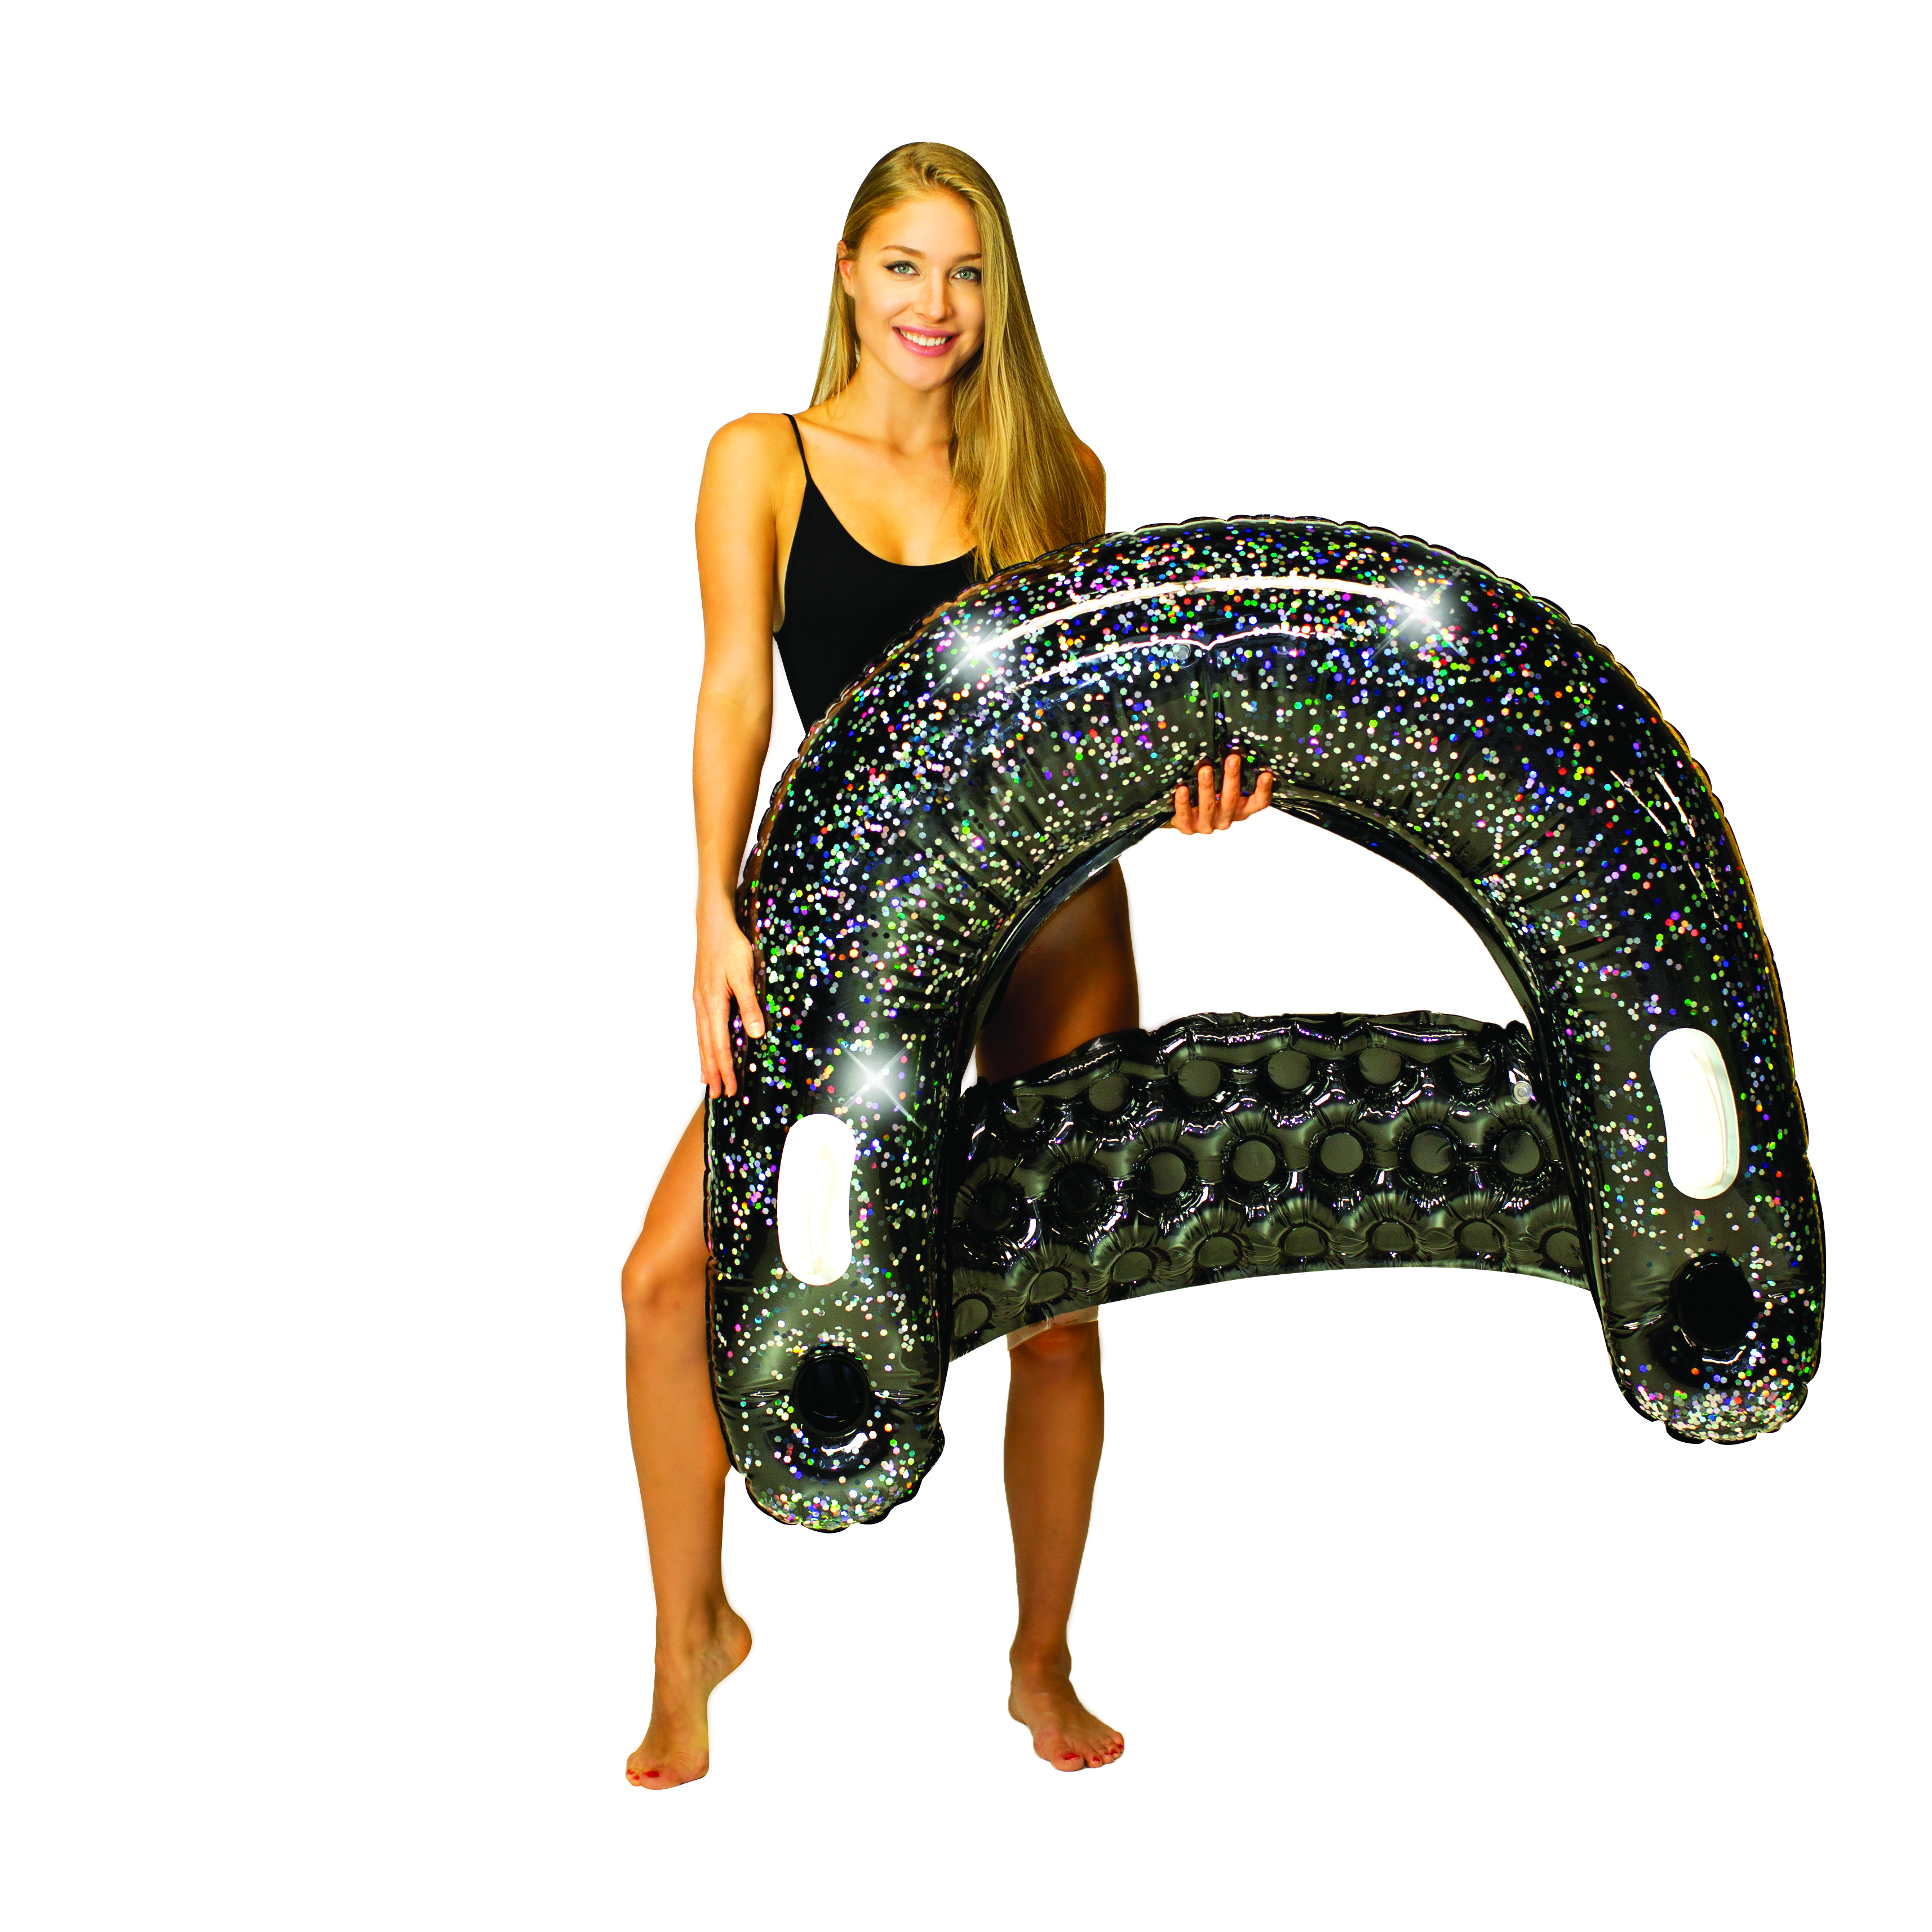 Glitter Sun Chair - Black Onyx Glitter